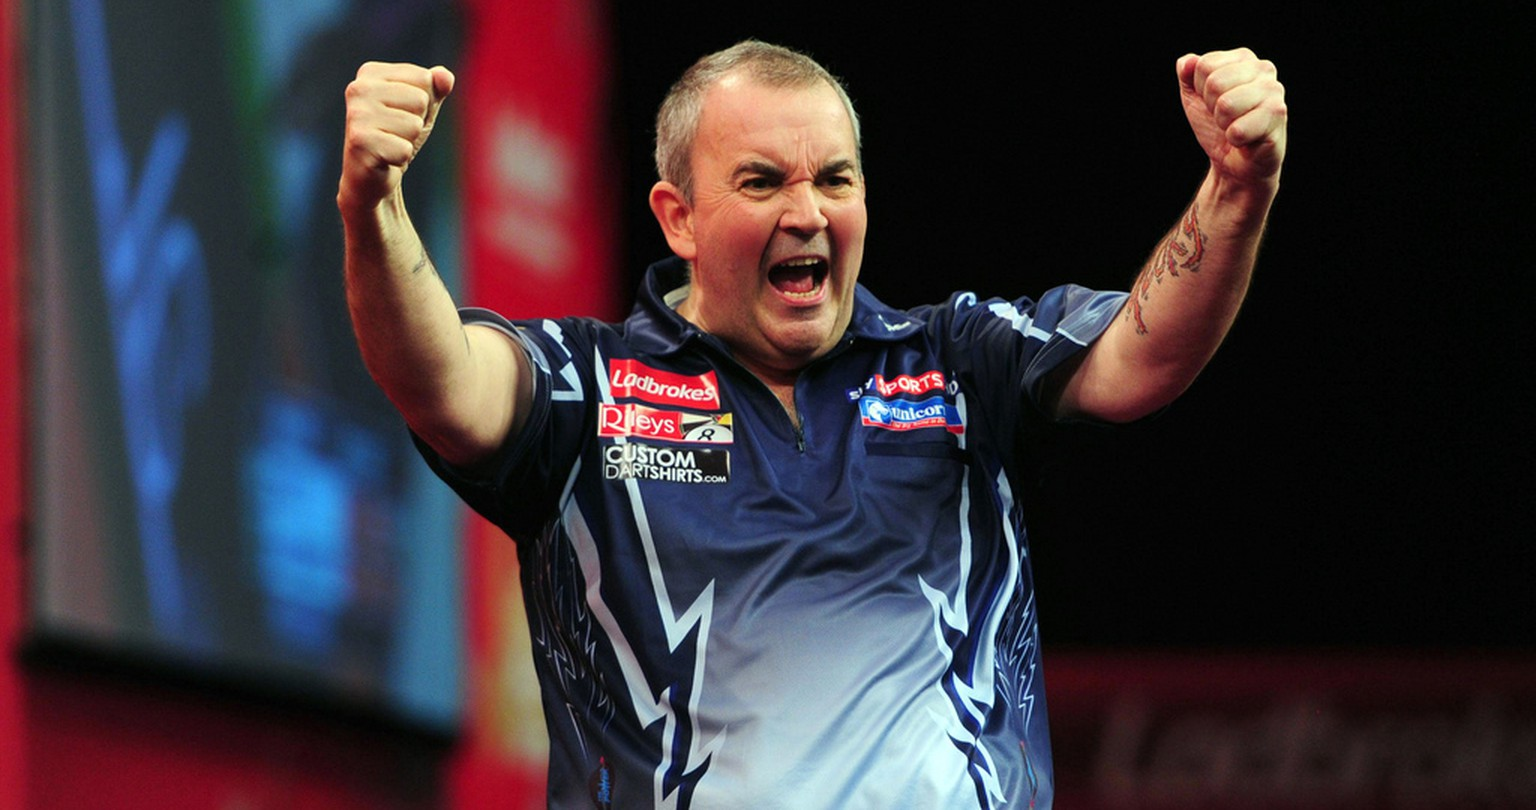 Britain's Phil Taylor celebrates defeating Raymond van Barneveld, of the Netherlands, in their semifinal match of  the Ladbrokes.com World Darts Championship at Alexandra Palace, in London, Sunday, Dec. 30, 2012. (AP Photo/PA) UNITED KINGDOM OUT NO SALES NO ARCHIVE